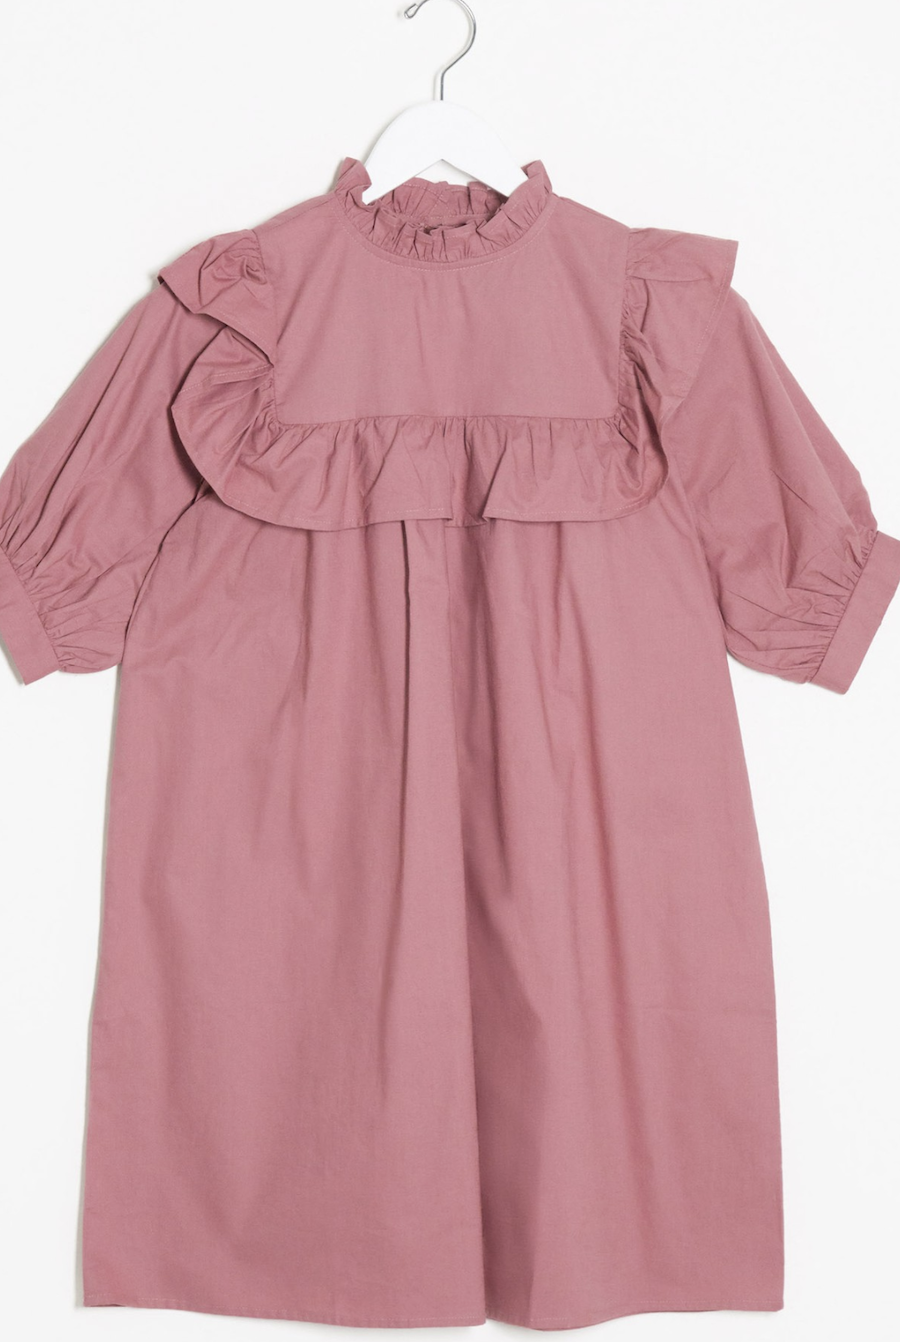 Wide dress with flounce detail in shadow pink by Influence